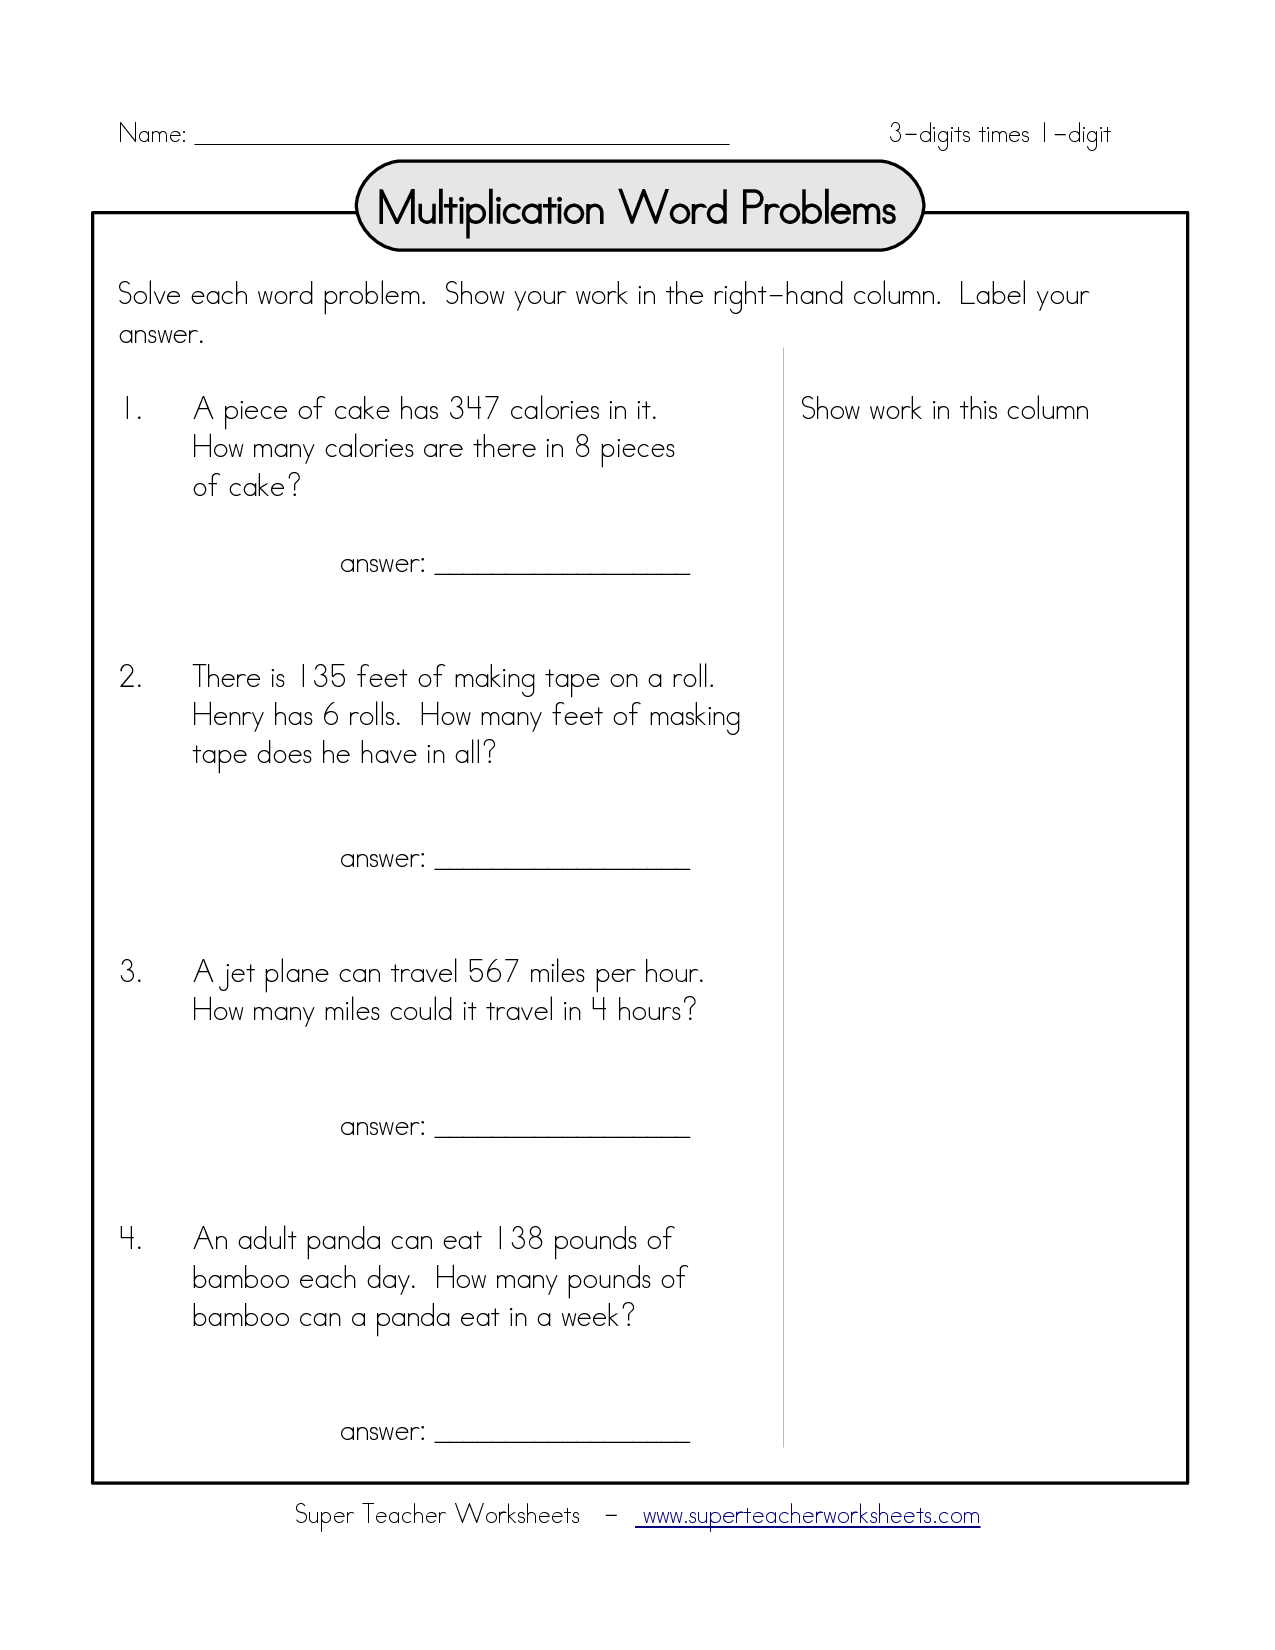 Uncategorized Ged Math Worksheets Printable 100 ged math problems worksheets 25 best for hard multiplication 2 digit word problems